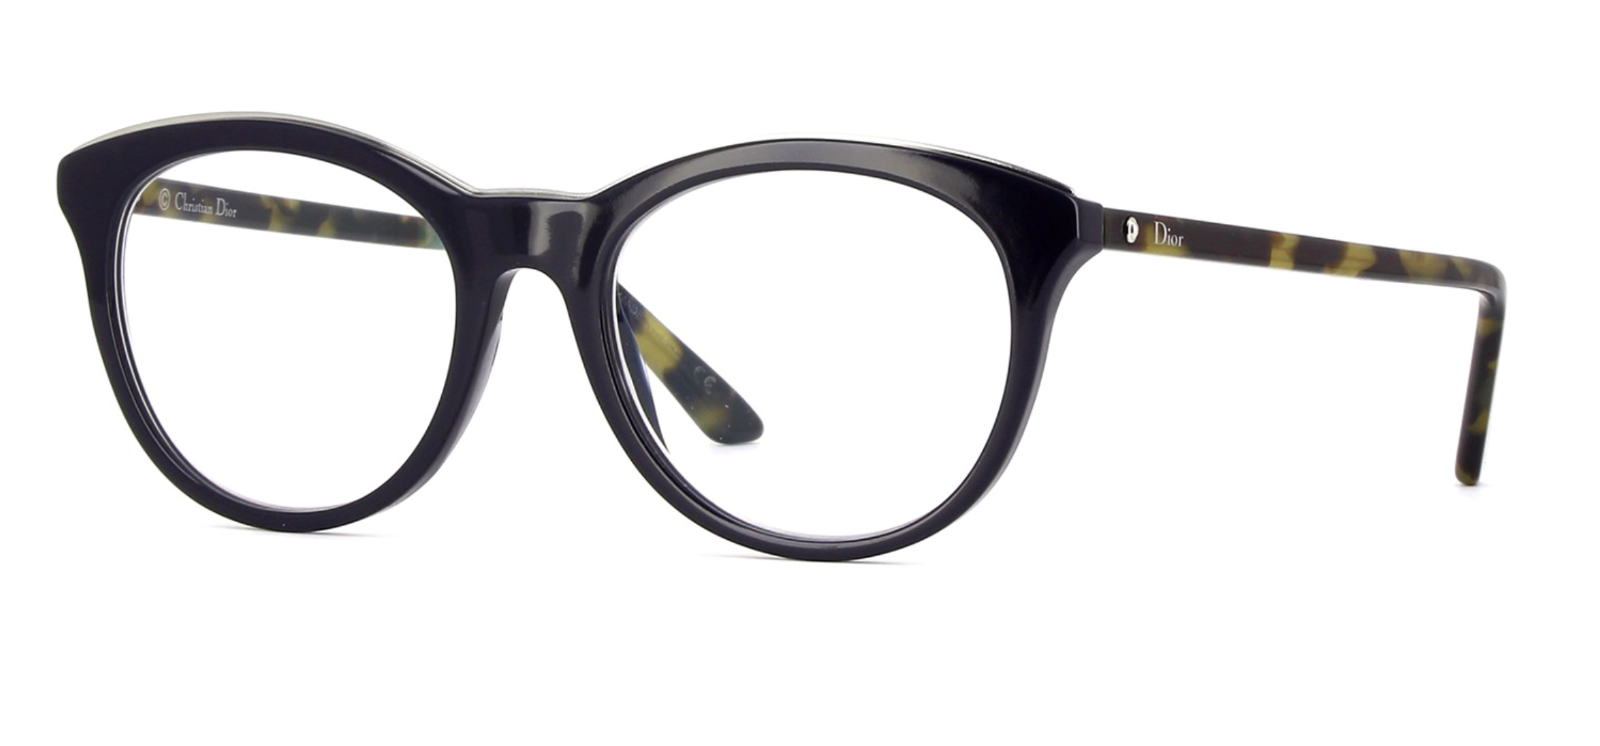 Christian Dior Eyeglass Frame: 21 listings